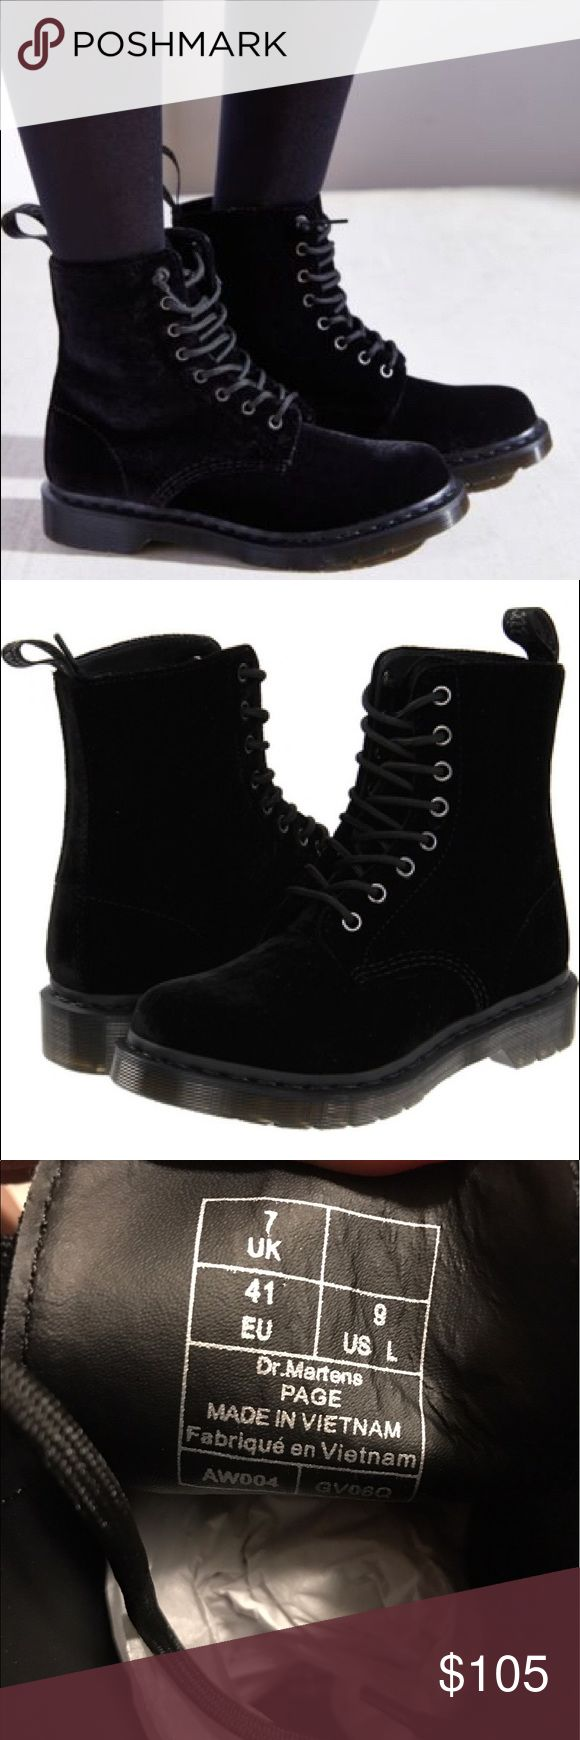 Dr Martens Page Velvet Black Boots NEW WITH BOX. women's size 9. Dr. Martens ZE YOU VELVET BLACK Dr. Martens Shoes